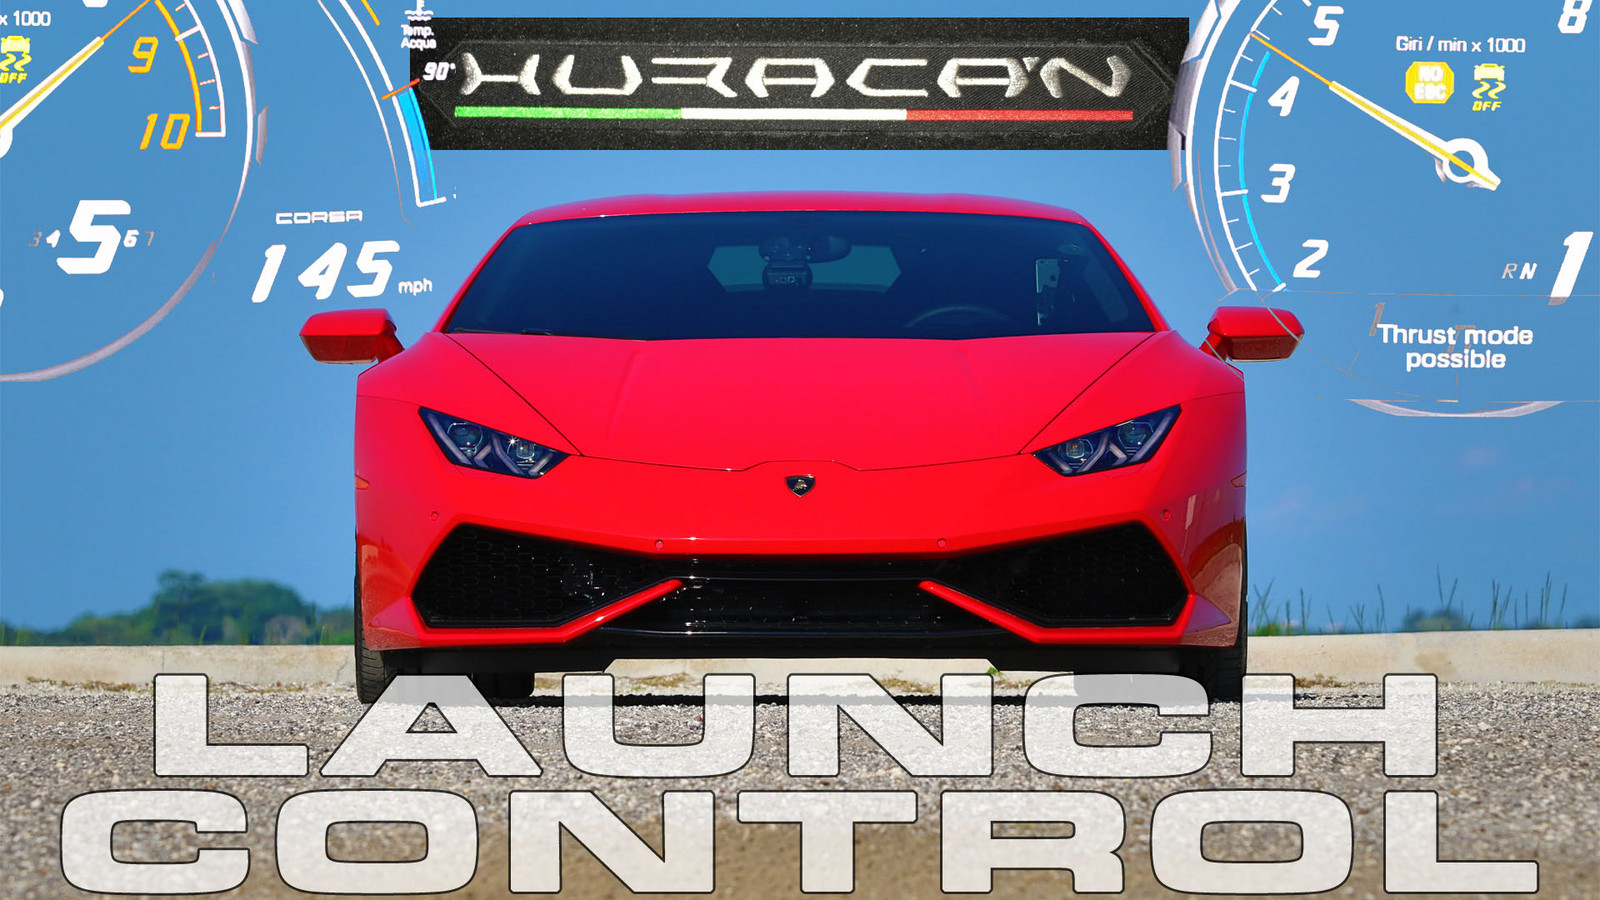 stock 2016 lamborghini huracan lp610 4 1 4 mile drag racing timeslip specs 0. Black Bedroom Furniture Sets. Home Design Ideas